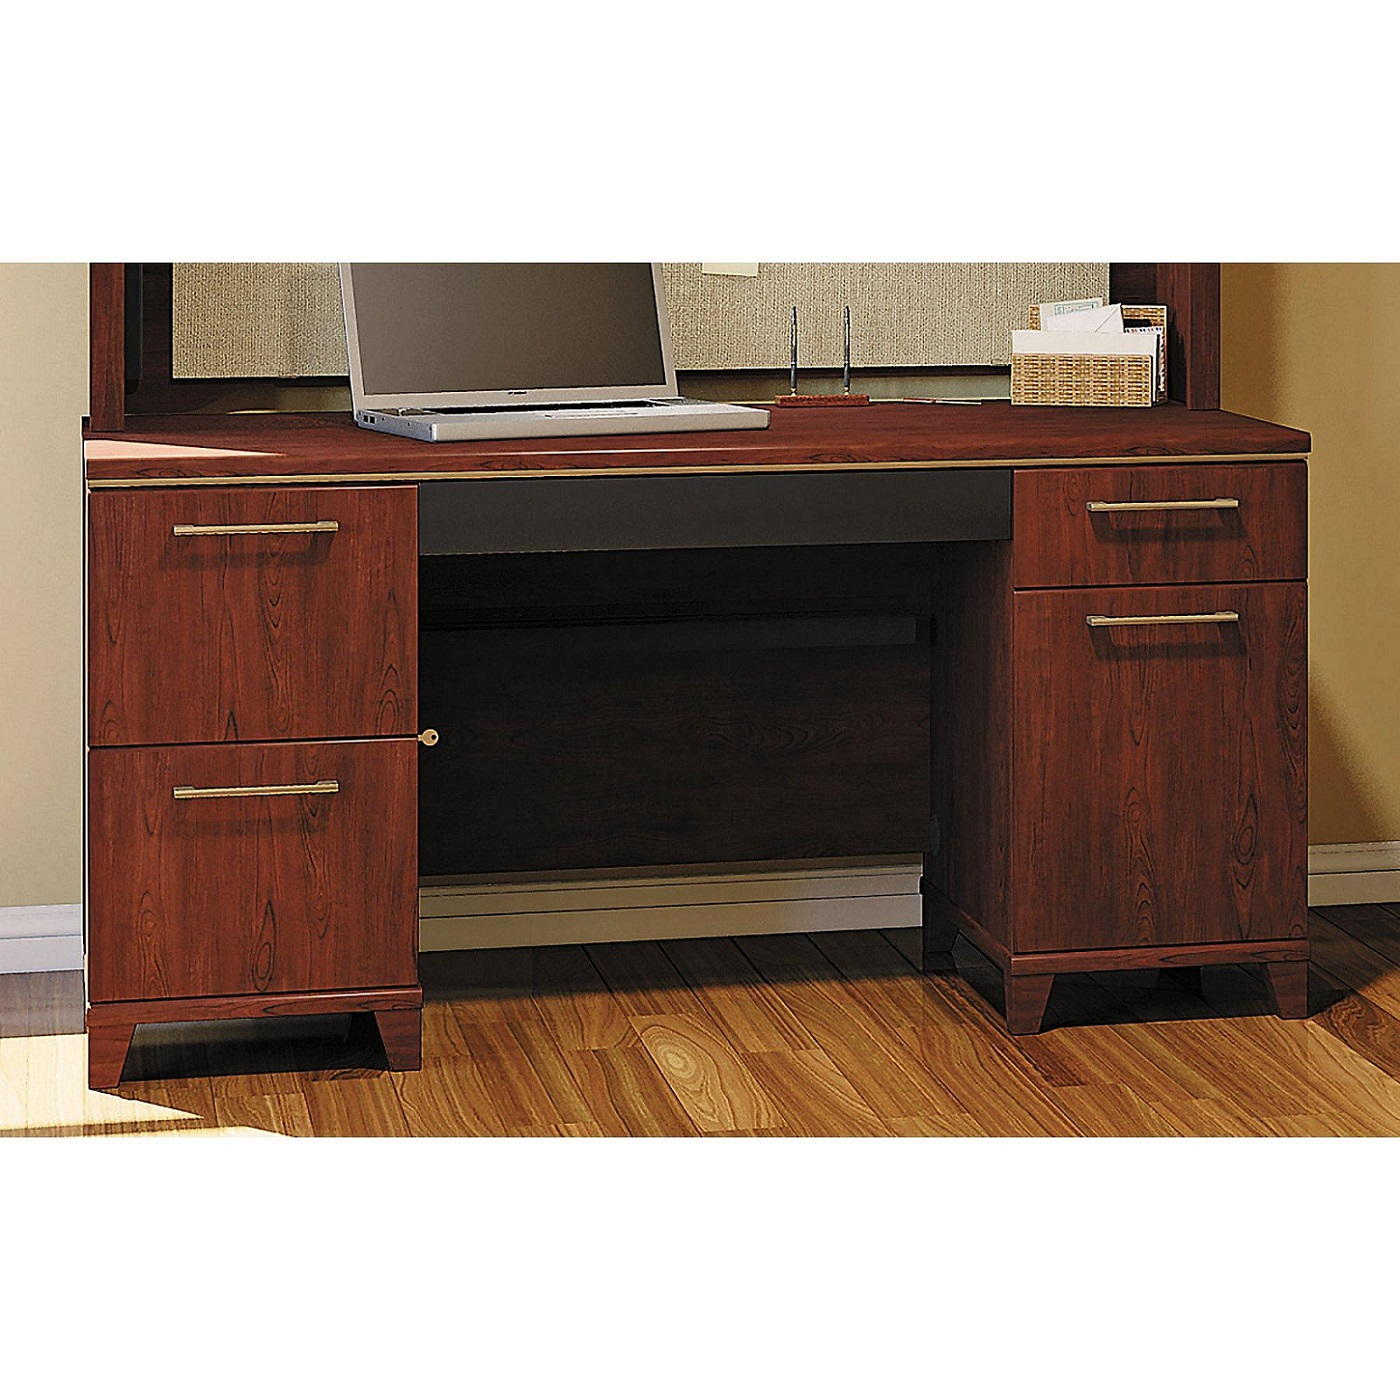 "<b><font color=#c60>BUSH BUSINESS FURNITURE HARVEST CHERRY 60""W OFFICE DESK - 2 PEDS EH-2960CS-03K. FREE SHIPPING:</b></font></font></b>"